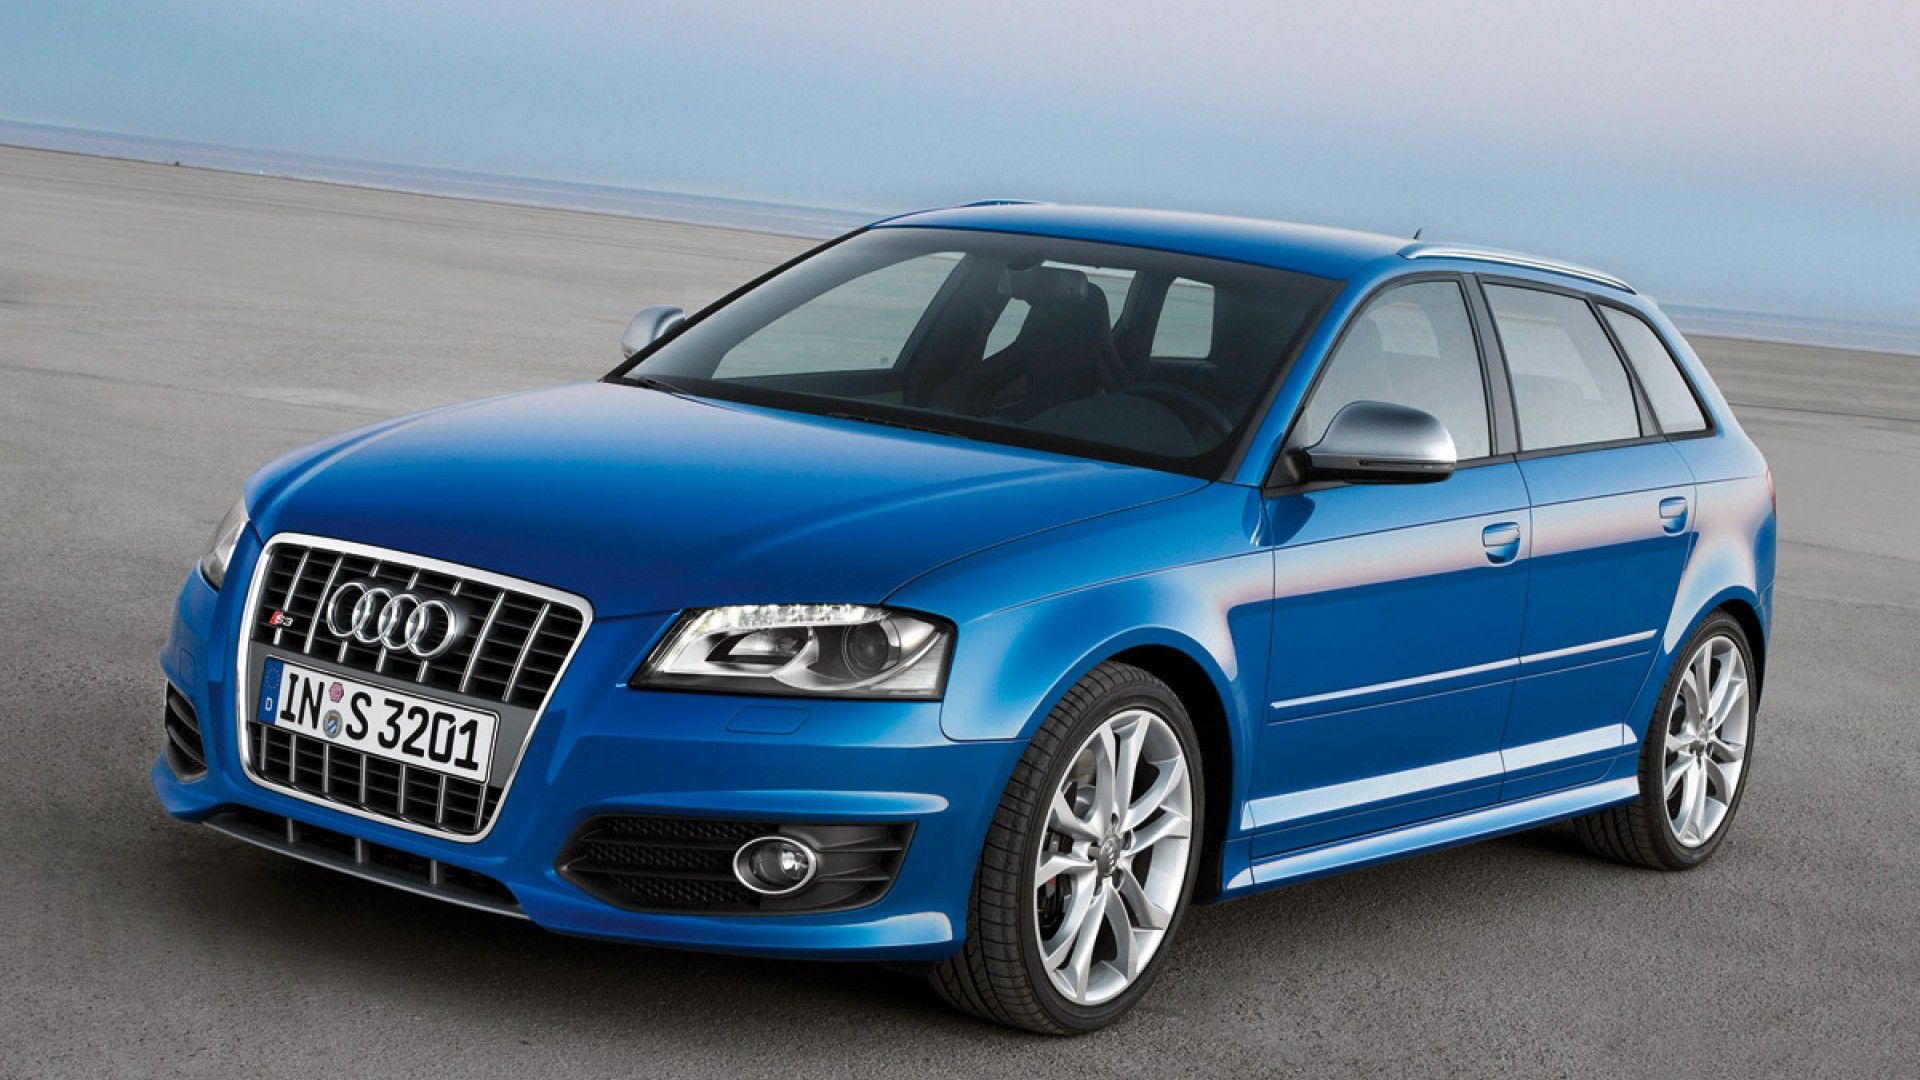 Audi A3 (2003 to Present)